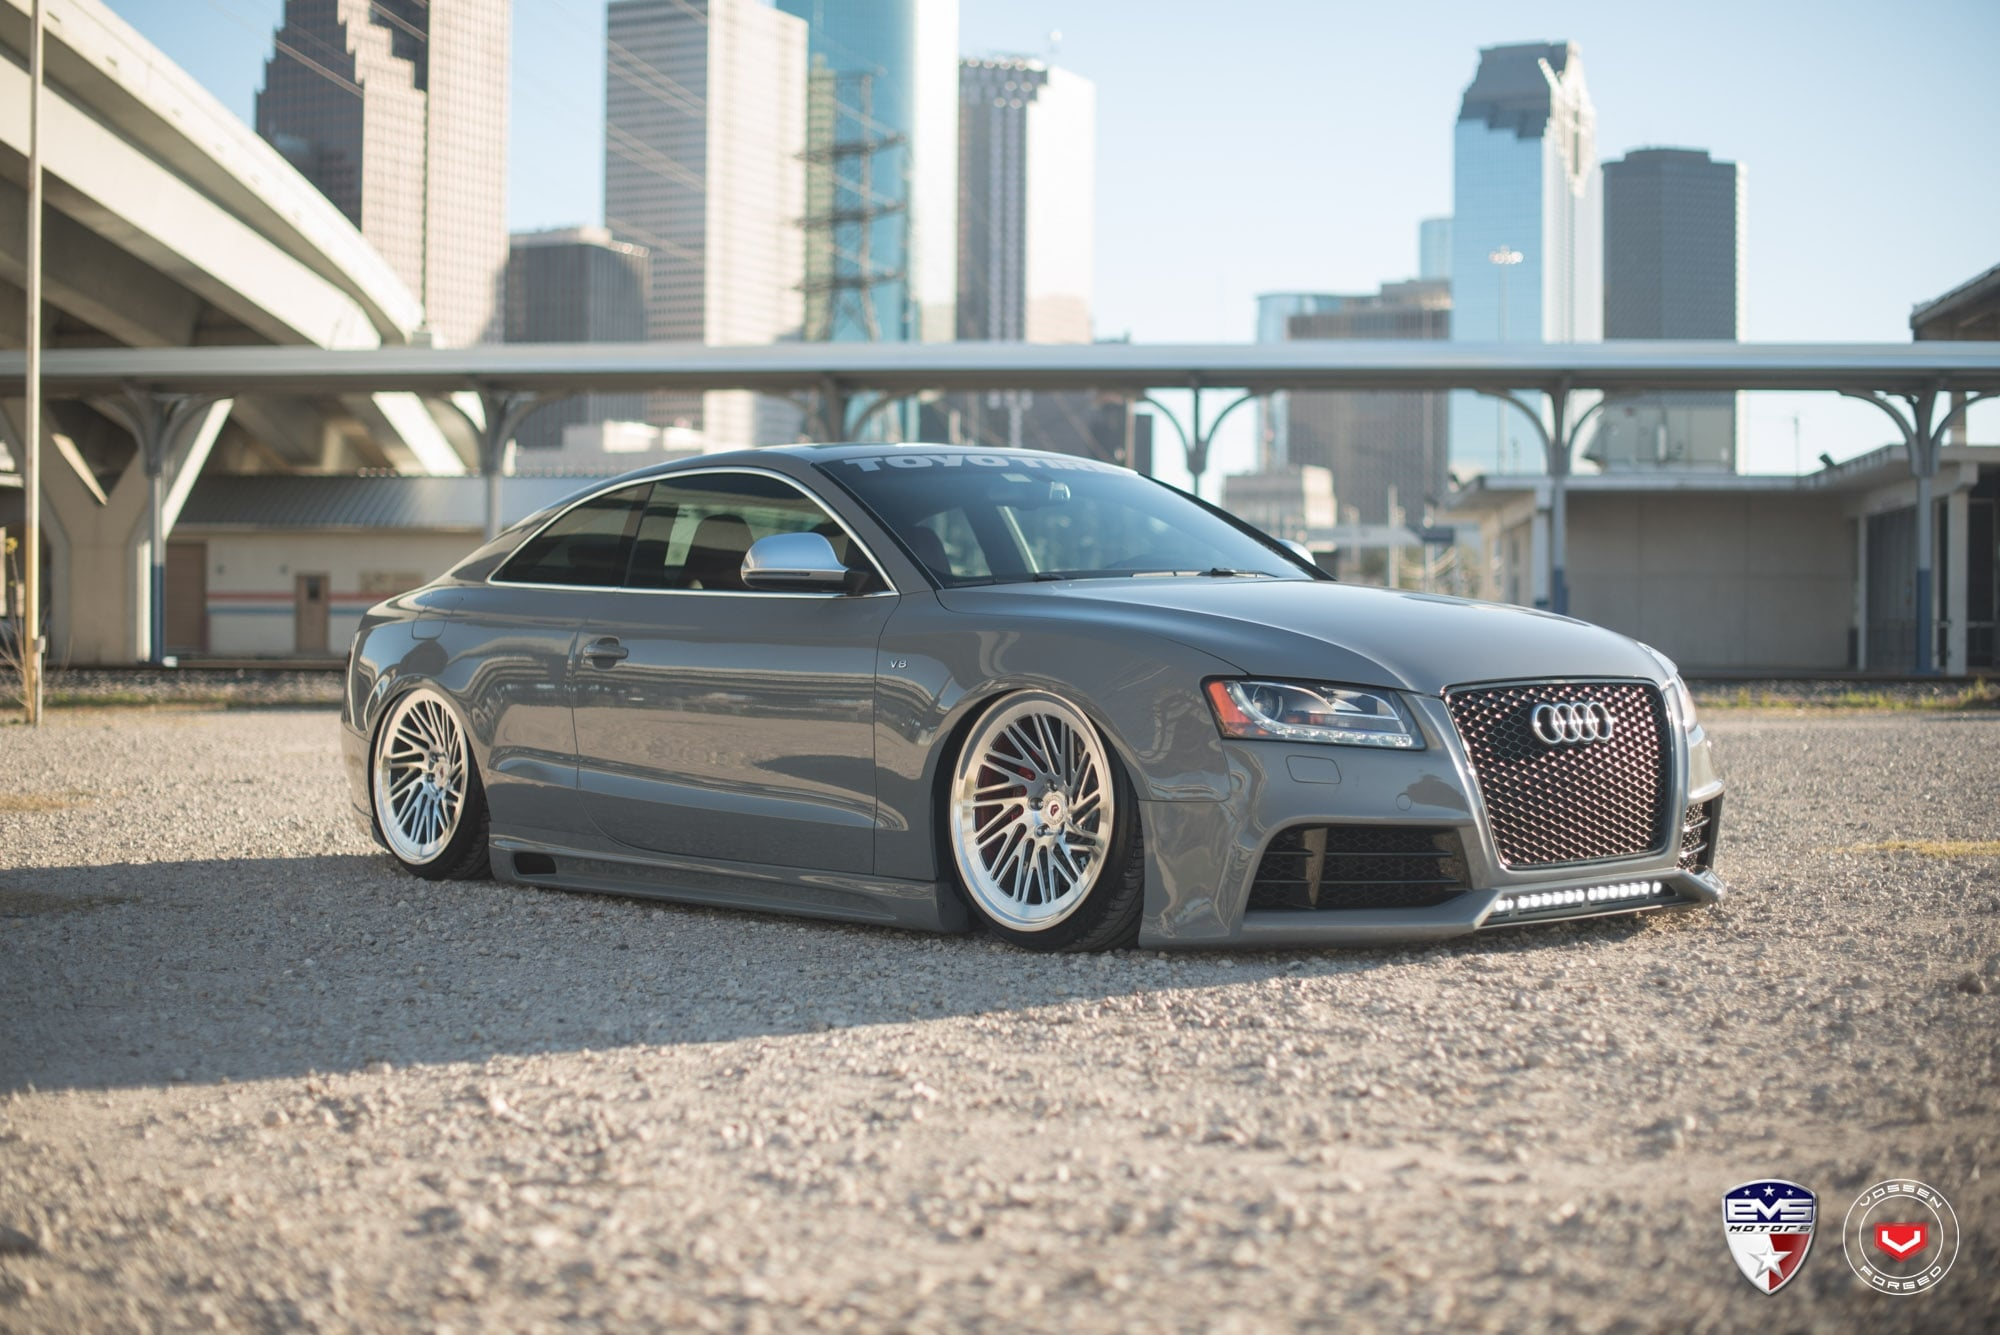 2015 Audi S5 Coupe Tuning 1920x1080 wallpaper